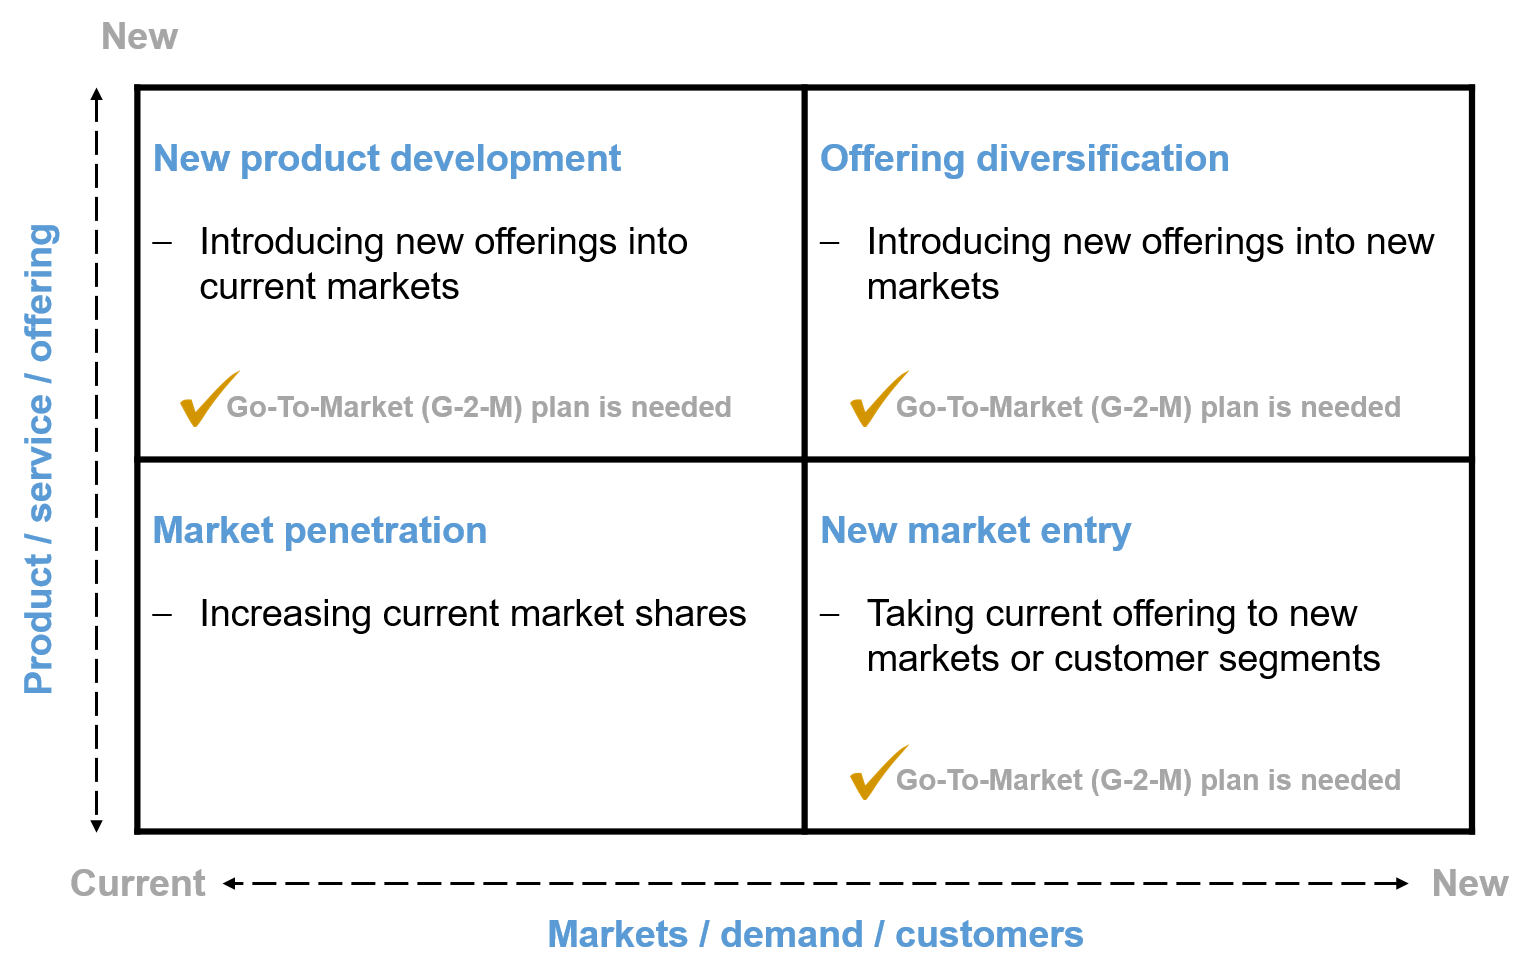 Situations where a Go-To-Market (G-2-M) plan is needed: New market entry, New product development, Offering diversification